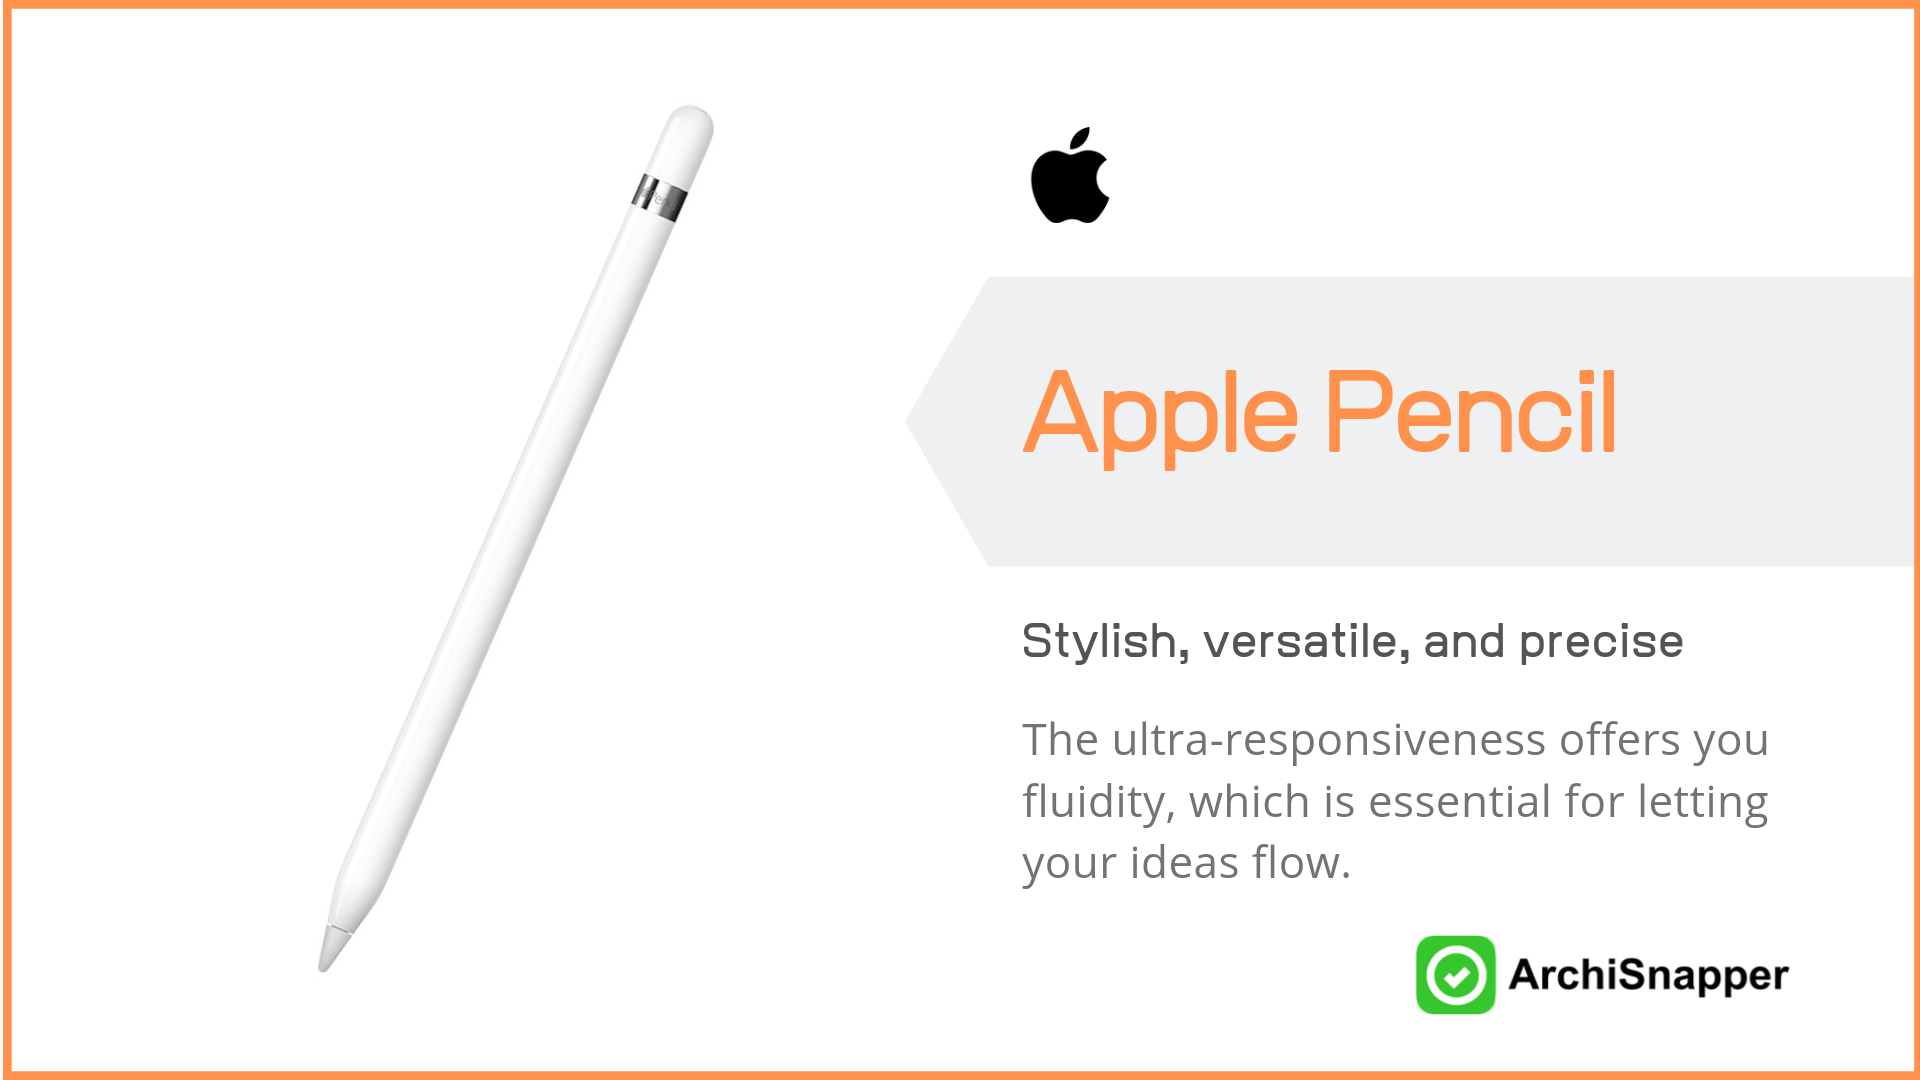 Apple Pencil | Top Tech for Architects Presented by Archisnapper.